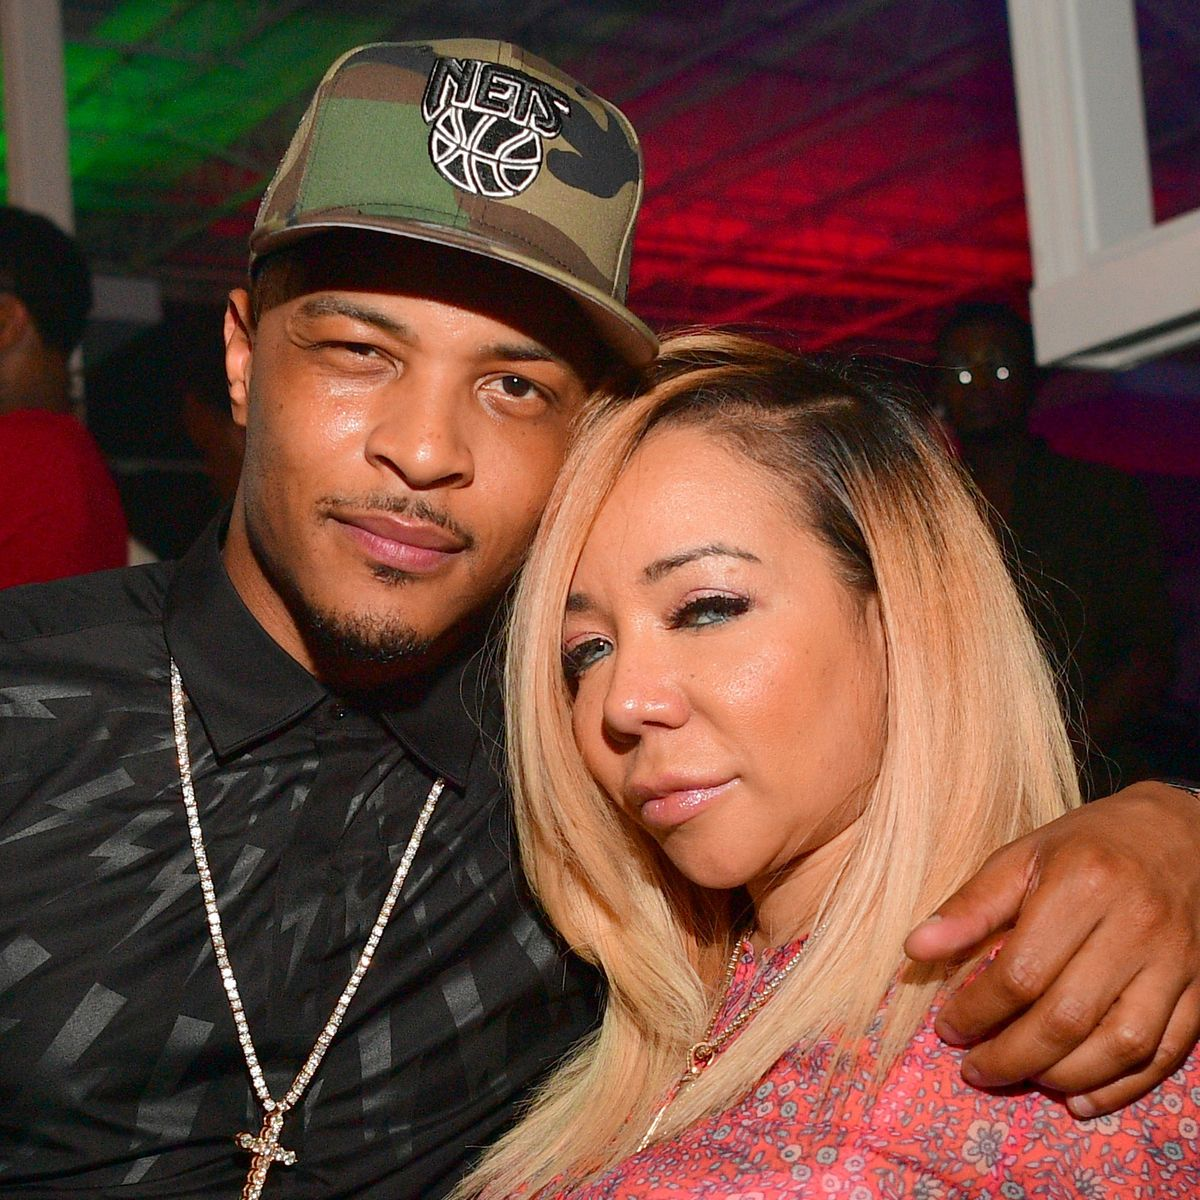 T.I. and Tiny Sued for Defamation Amid Assault Allegations